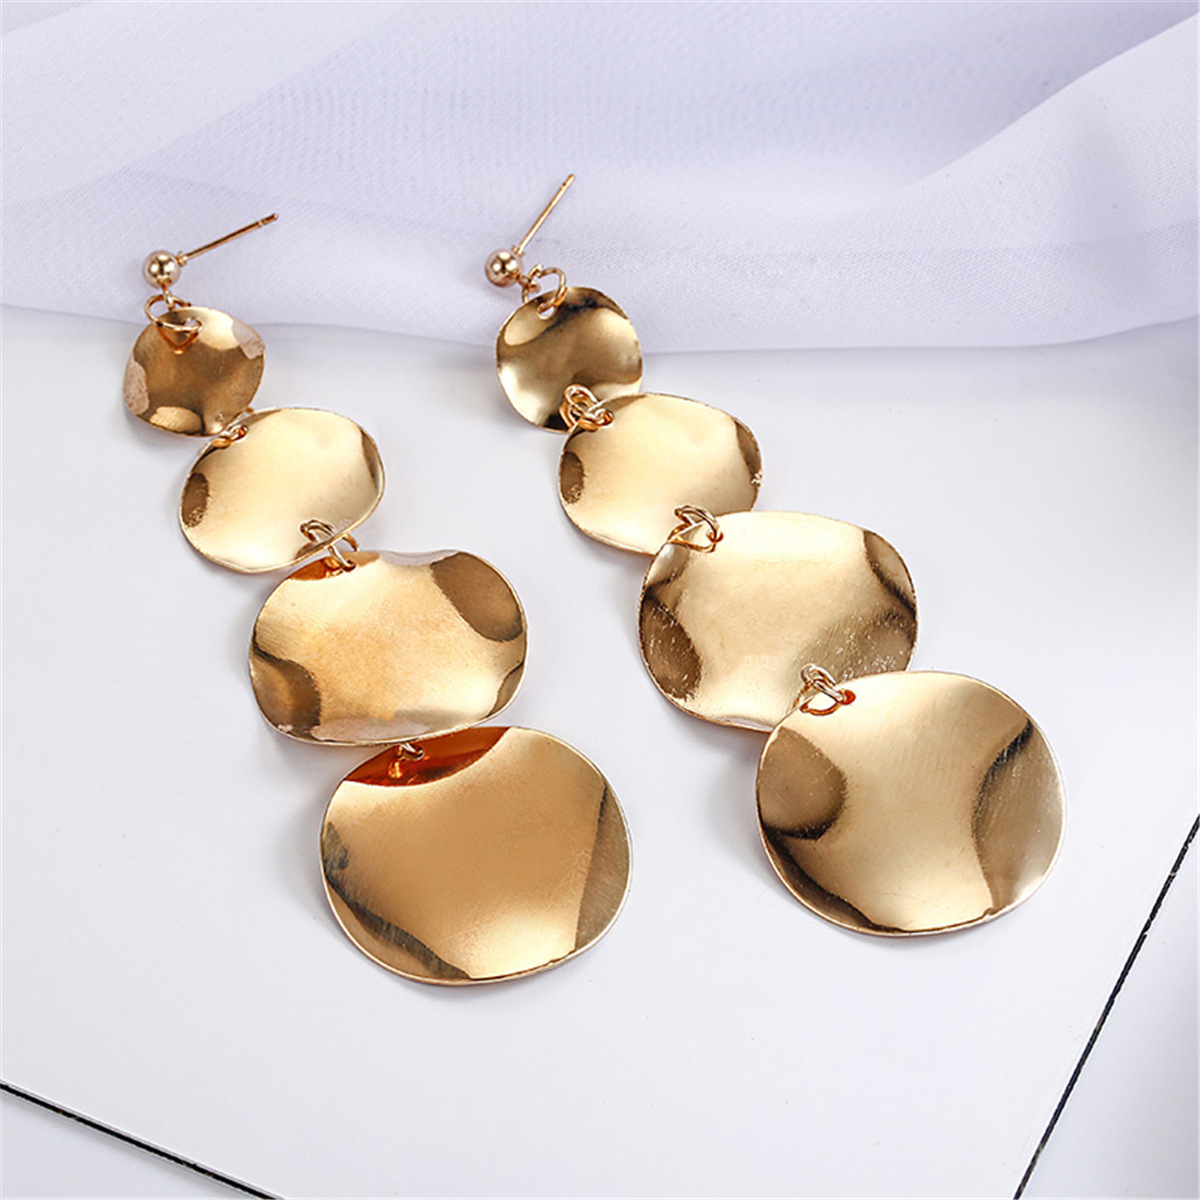 jewelry retro long round circle earrings alloy geometric irregular round earrings wholesale nihaojewelry NHPF218285